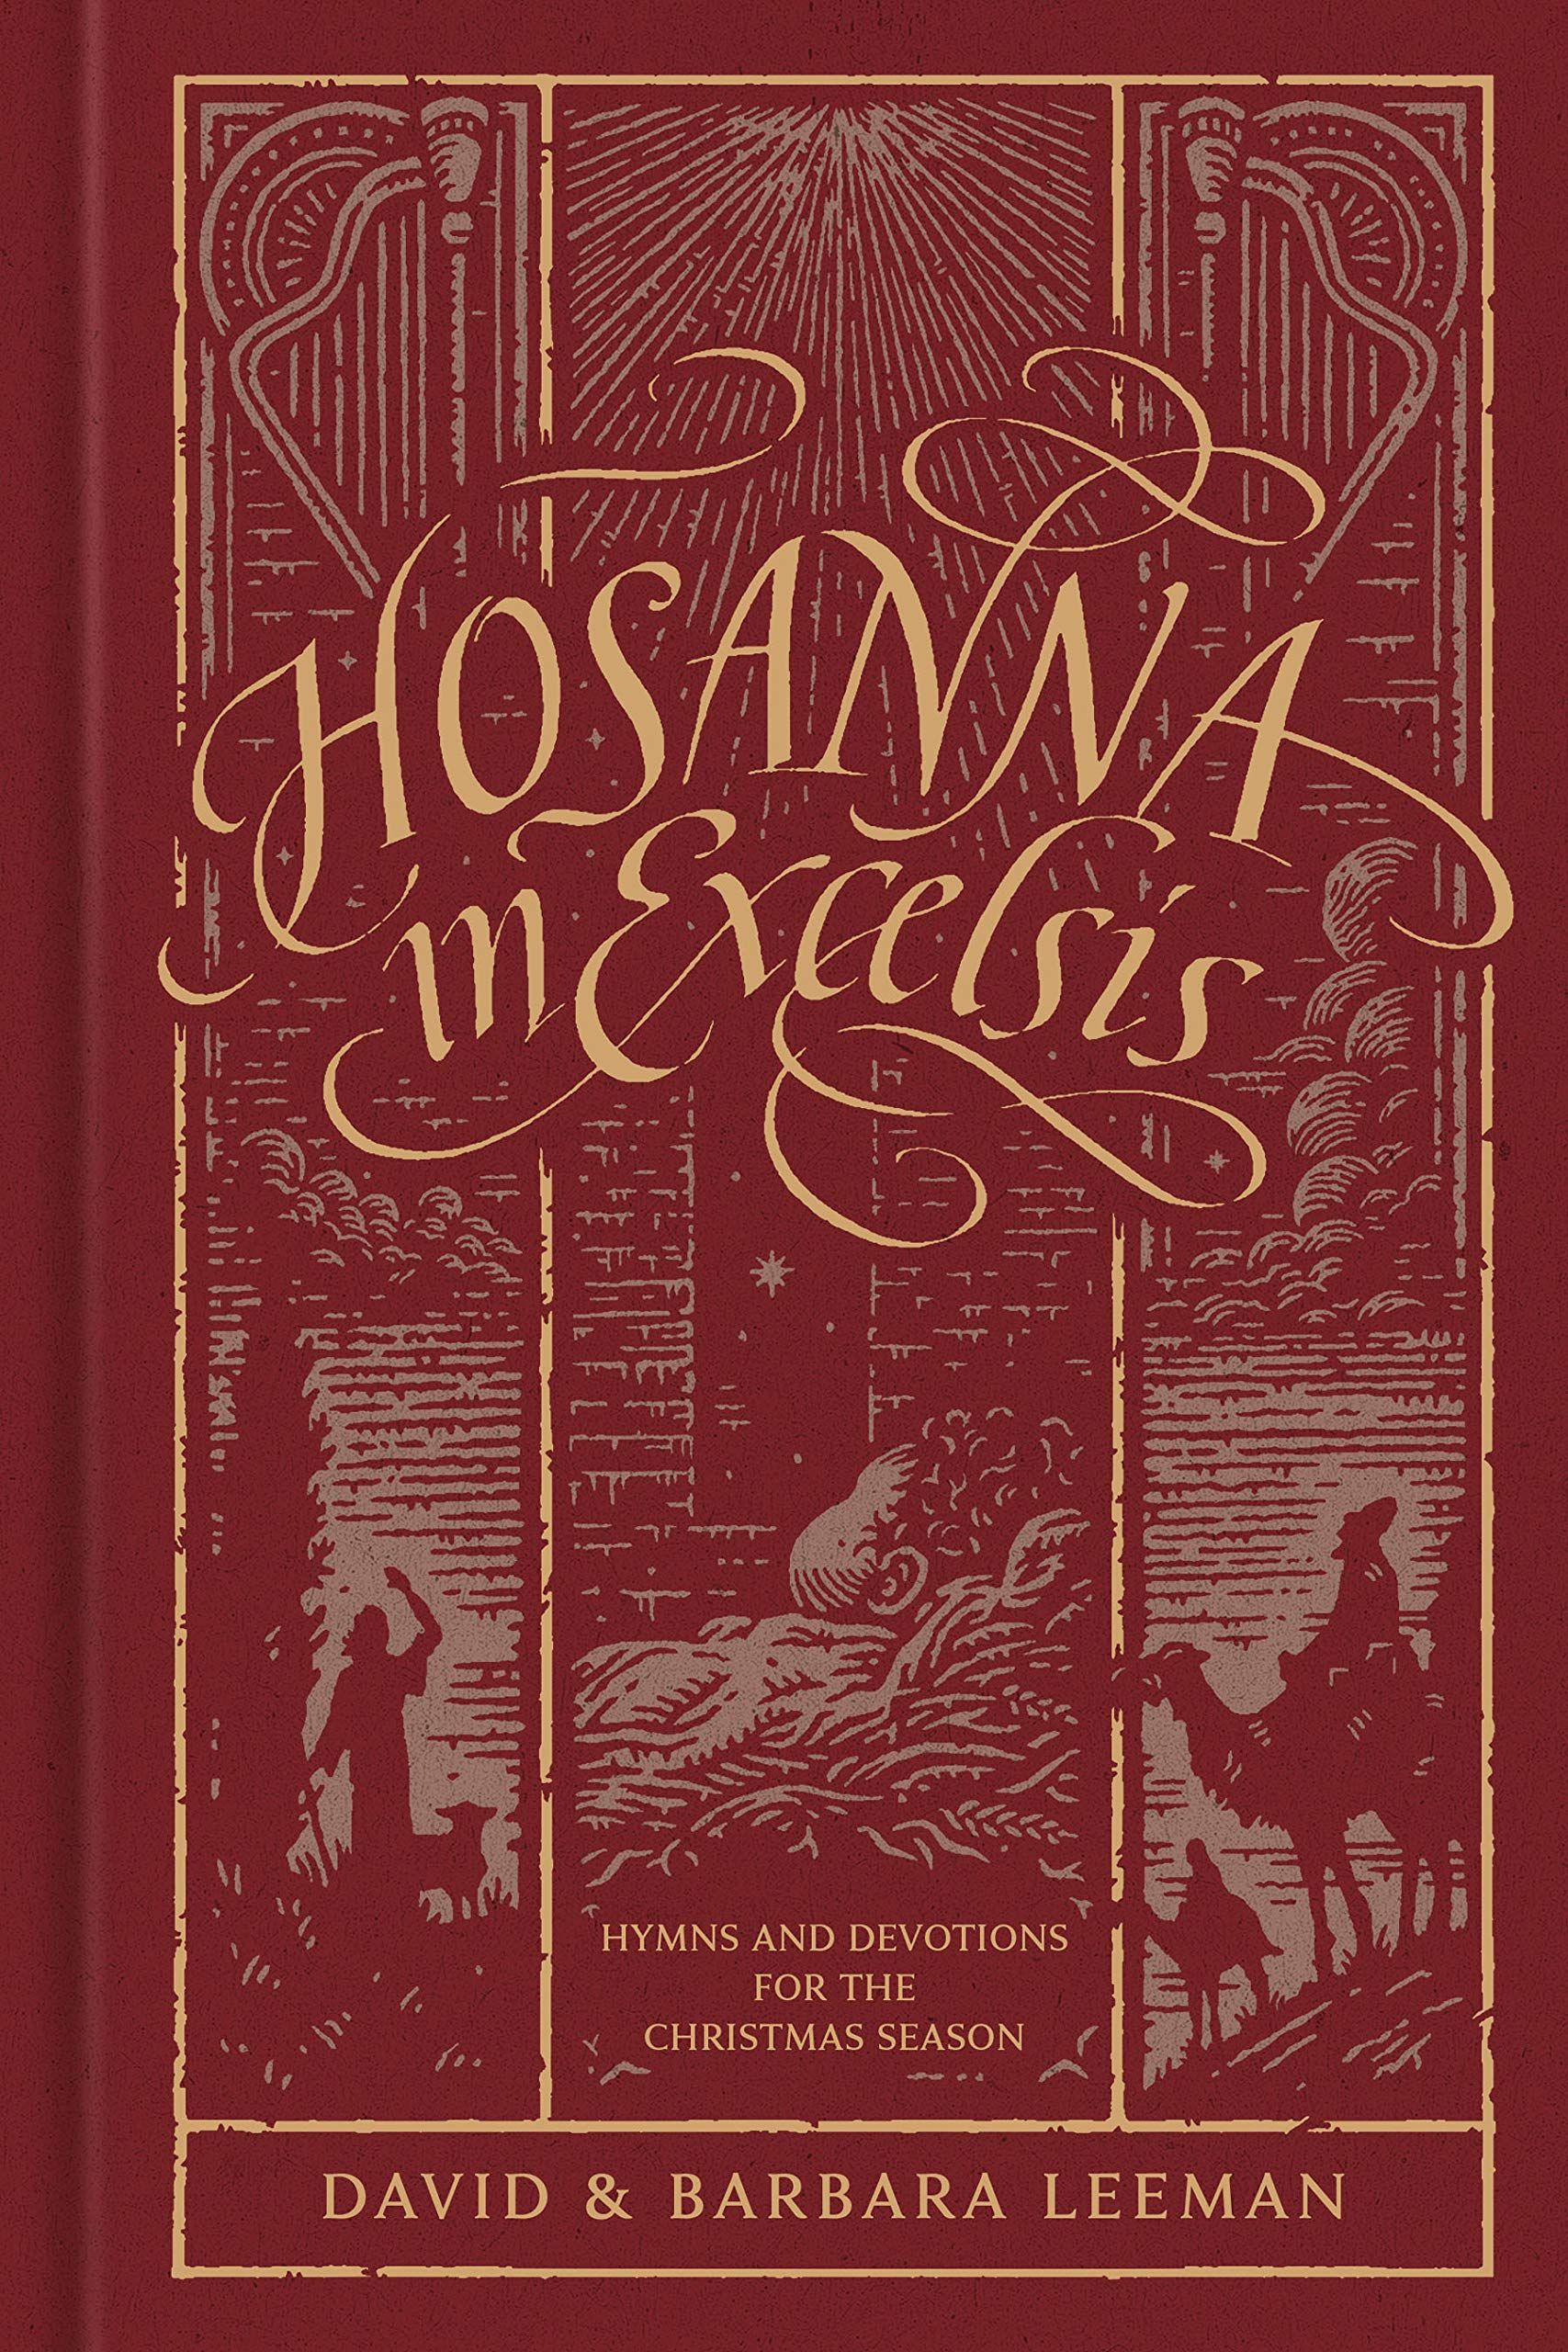 New Christmas Hymns 2020 Hosanna in Excelsis: Hymns and Devotions for the Christmas Season